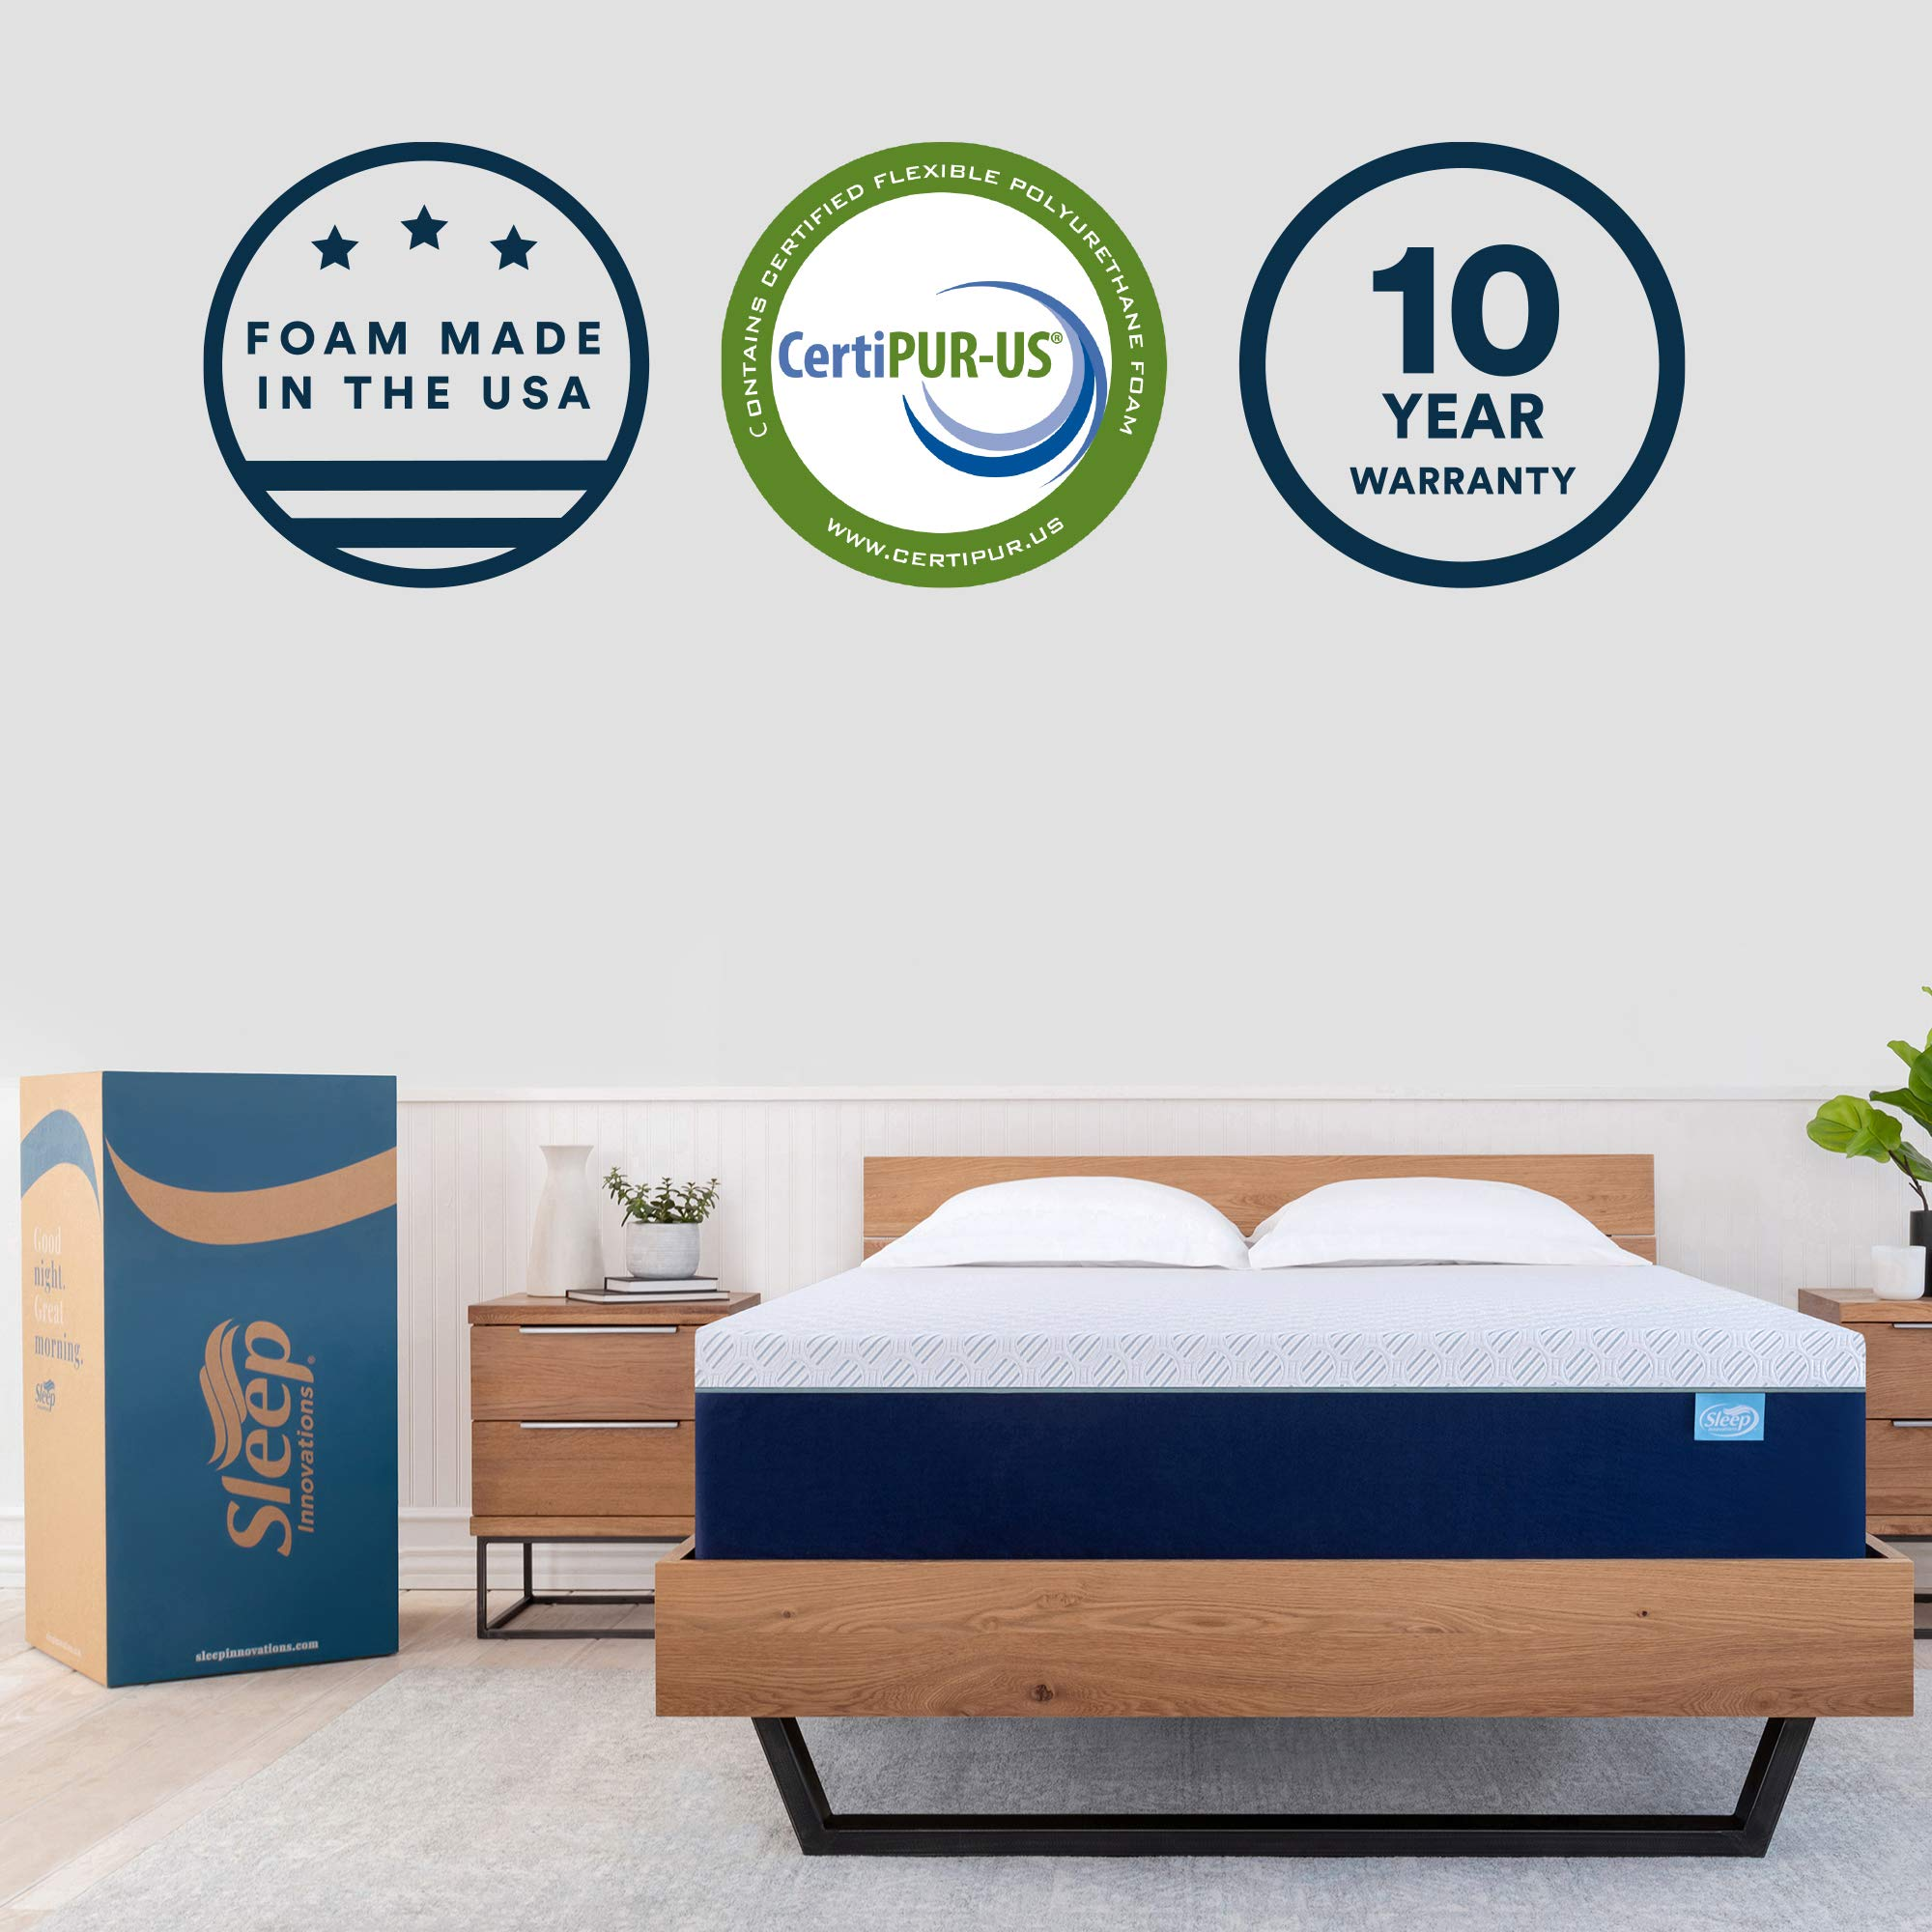 Sleep Innovations Shiloh 14-inch Memory Foam Mattress, Bed in A Box, Soft Cover Made in the USA, 10-Year Warranty, King, White by Sleep Innovations